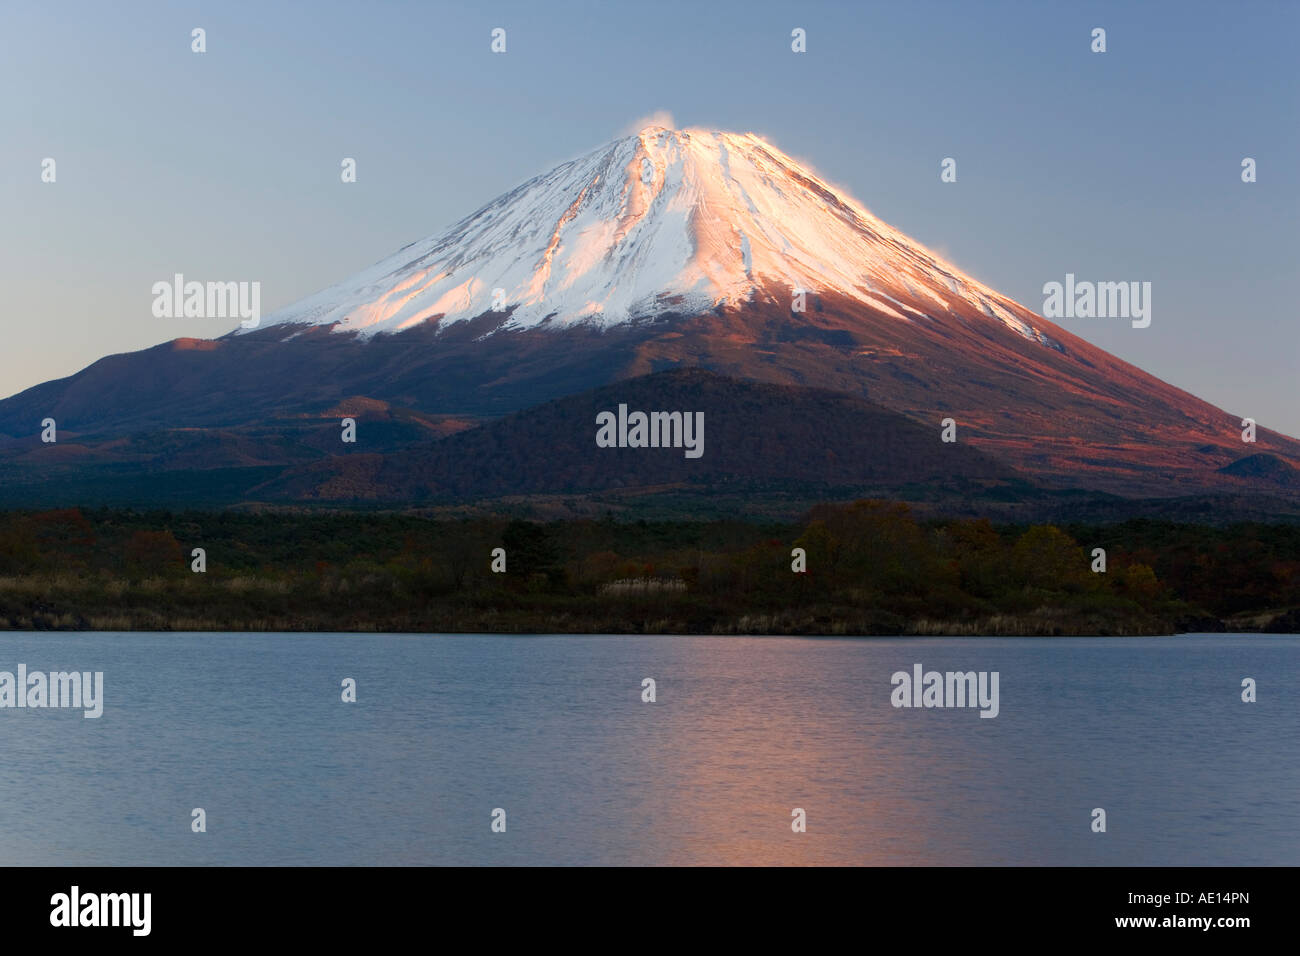 Japan Honshu Fuji Hakone Izu National Park Mount Fuji 3776m snow capped and viewed across lake Shoji ko in the Fuji - Stock Image